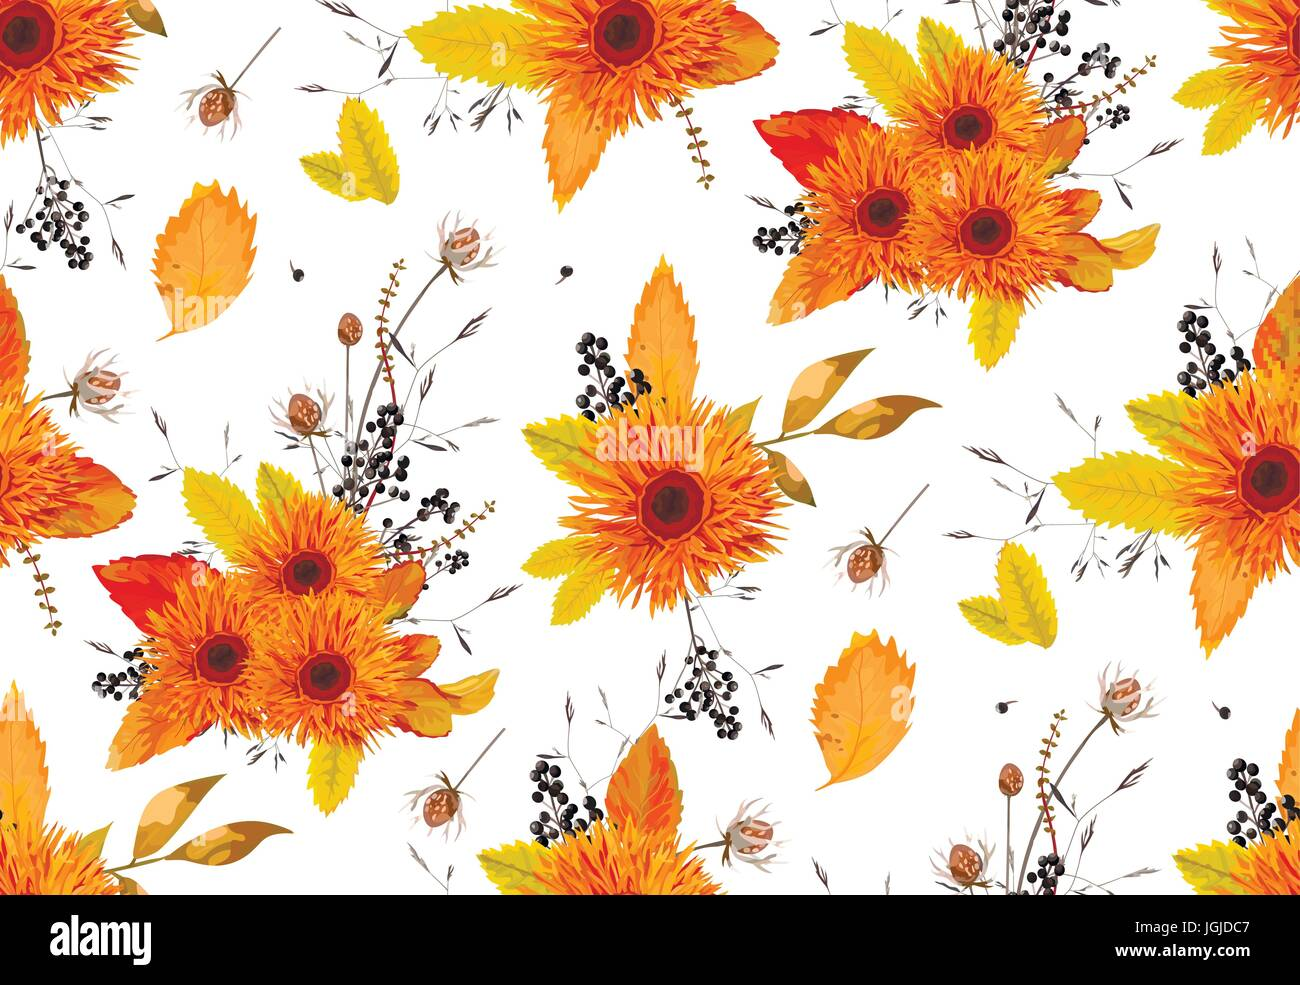 Pattern seamless autumn flowers gerbera sunflower beautiful flower ash leaves berry background wallpaper orange, yellow design watercolor style illust